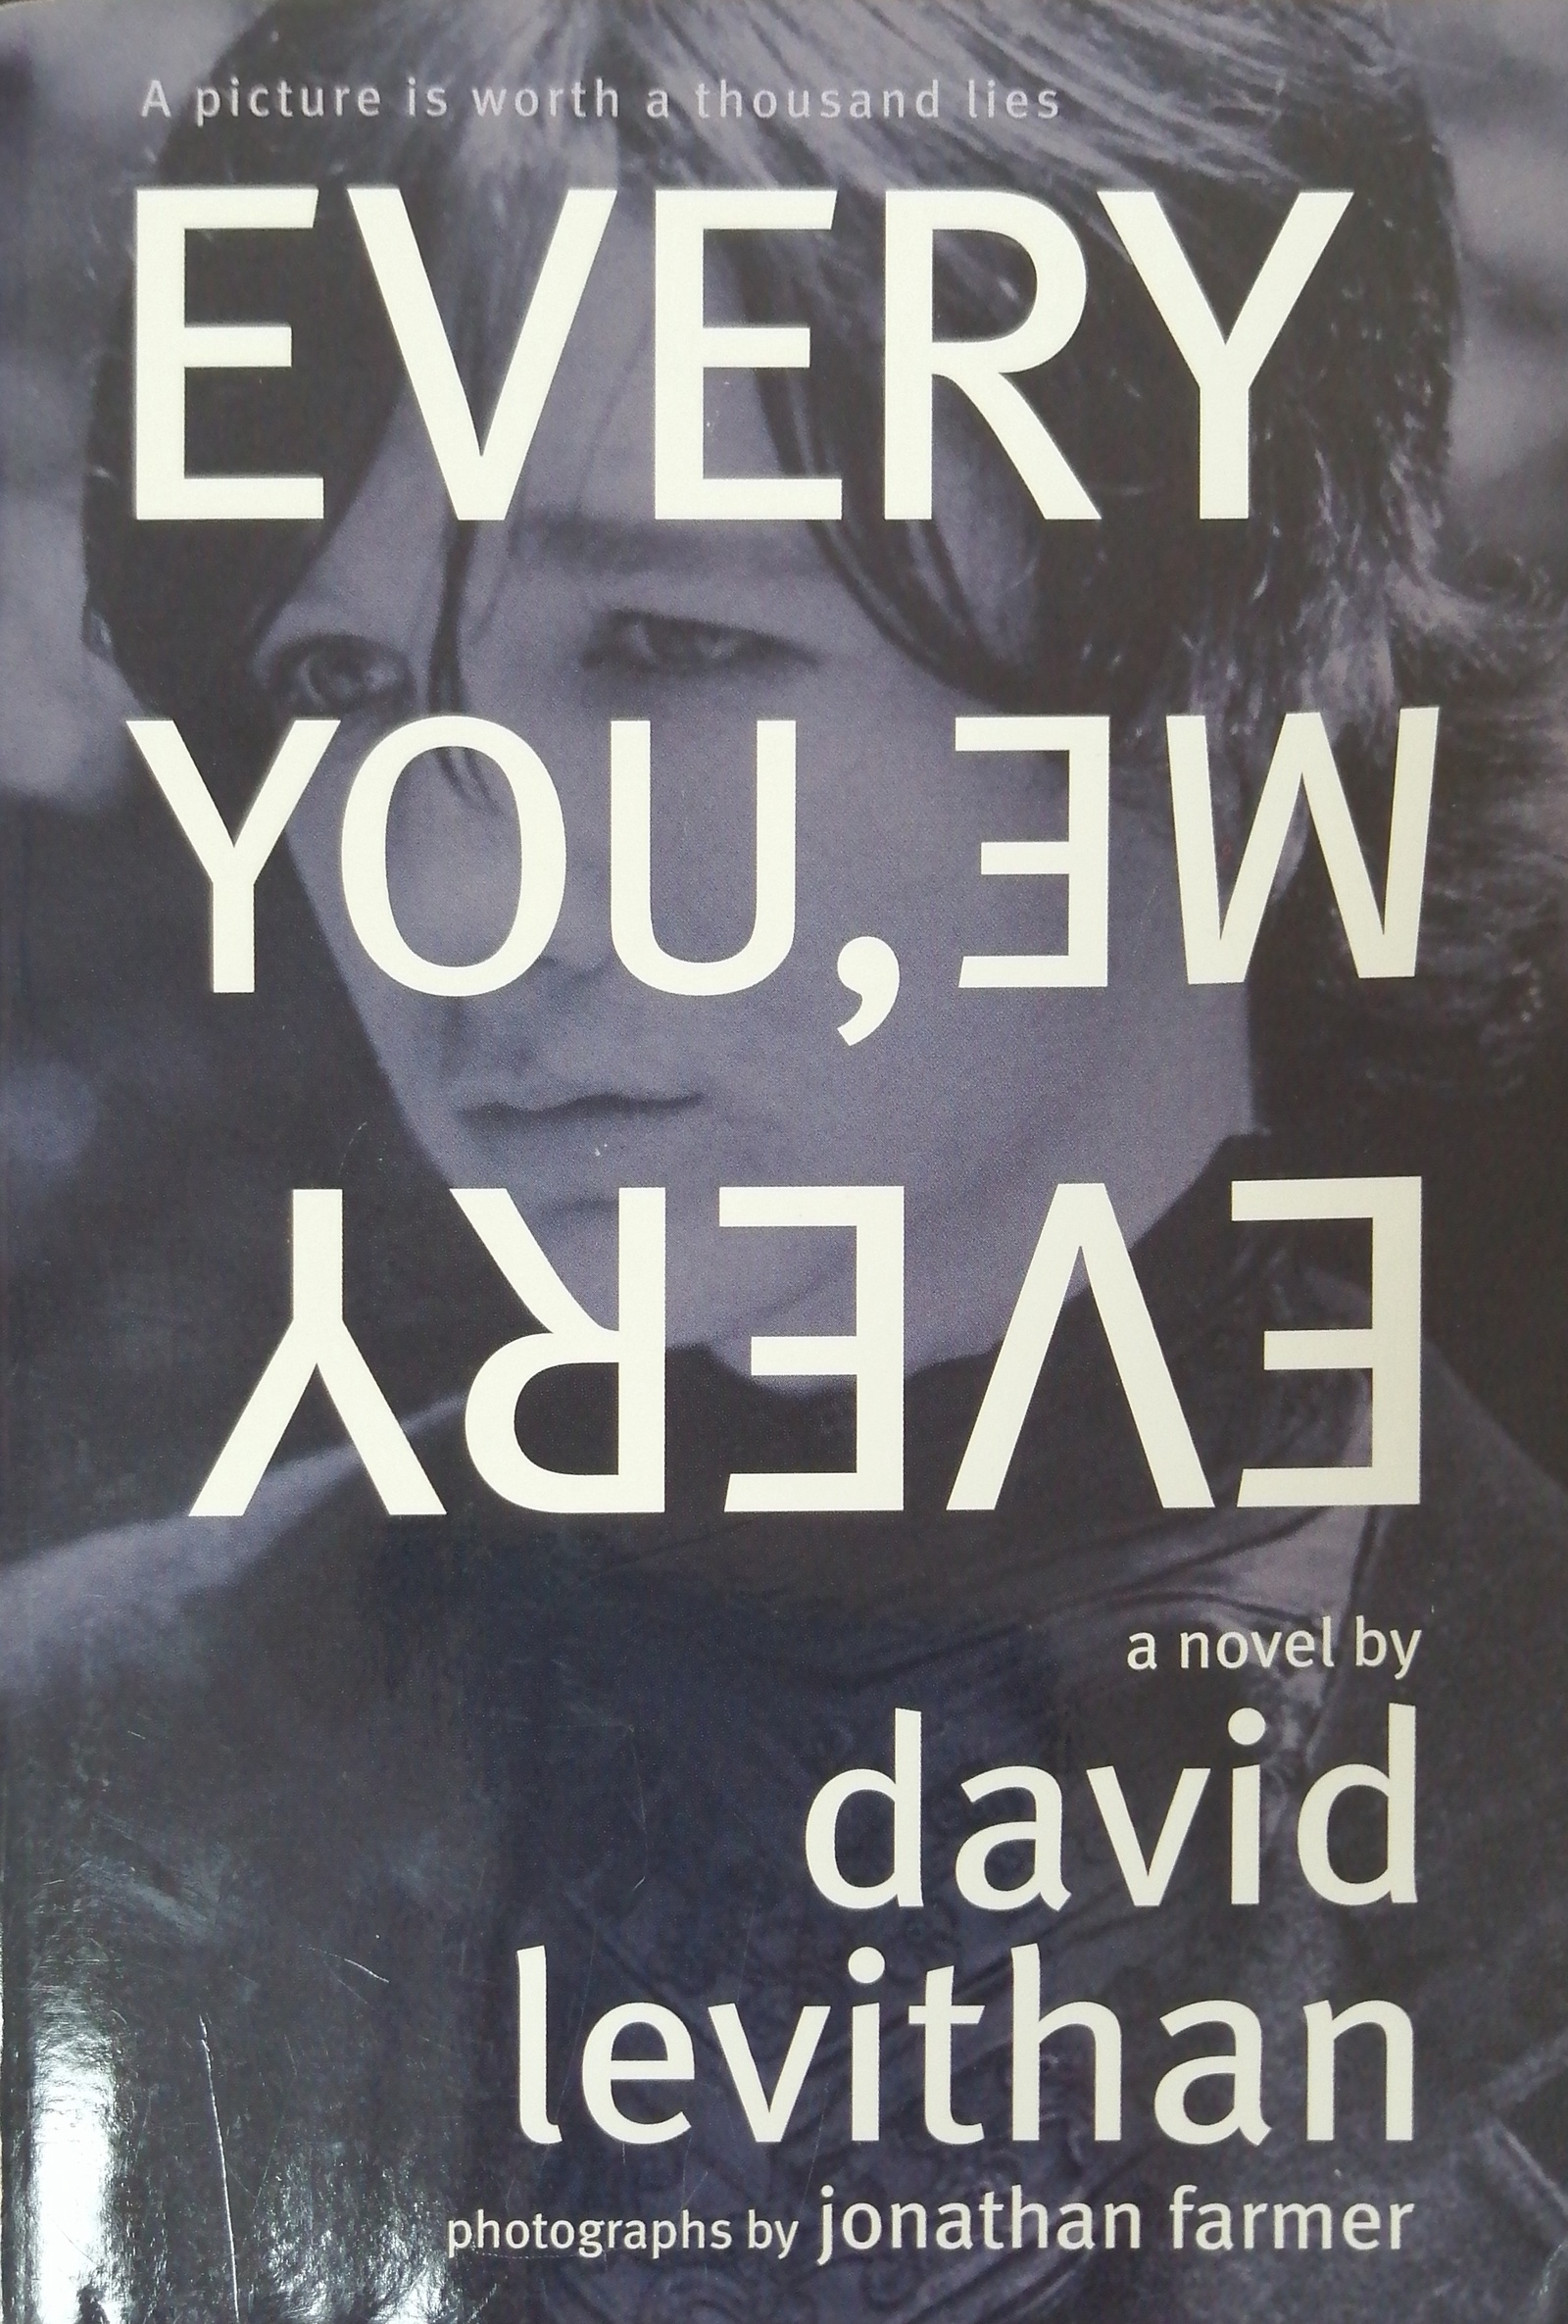 Levithan David Every You, Every Me